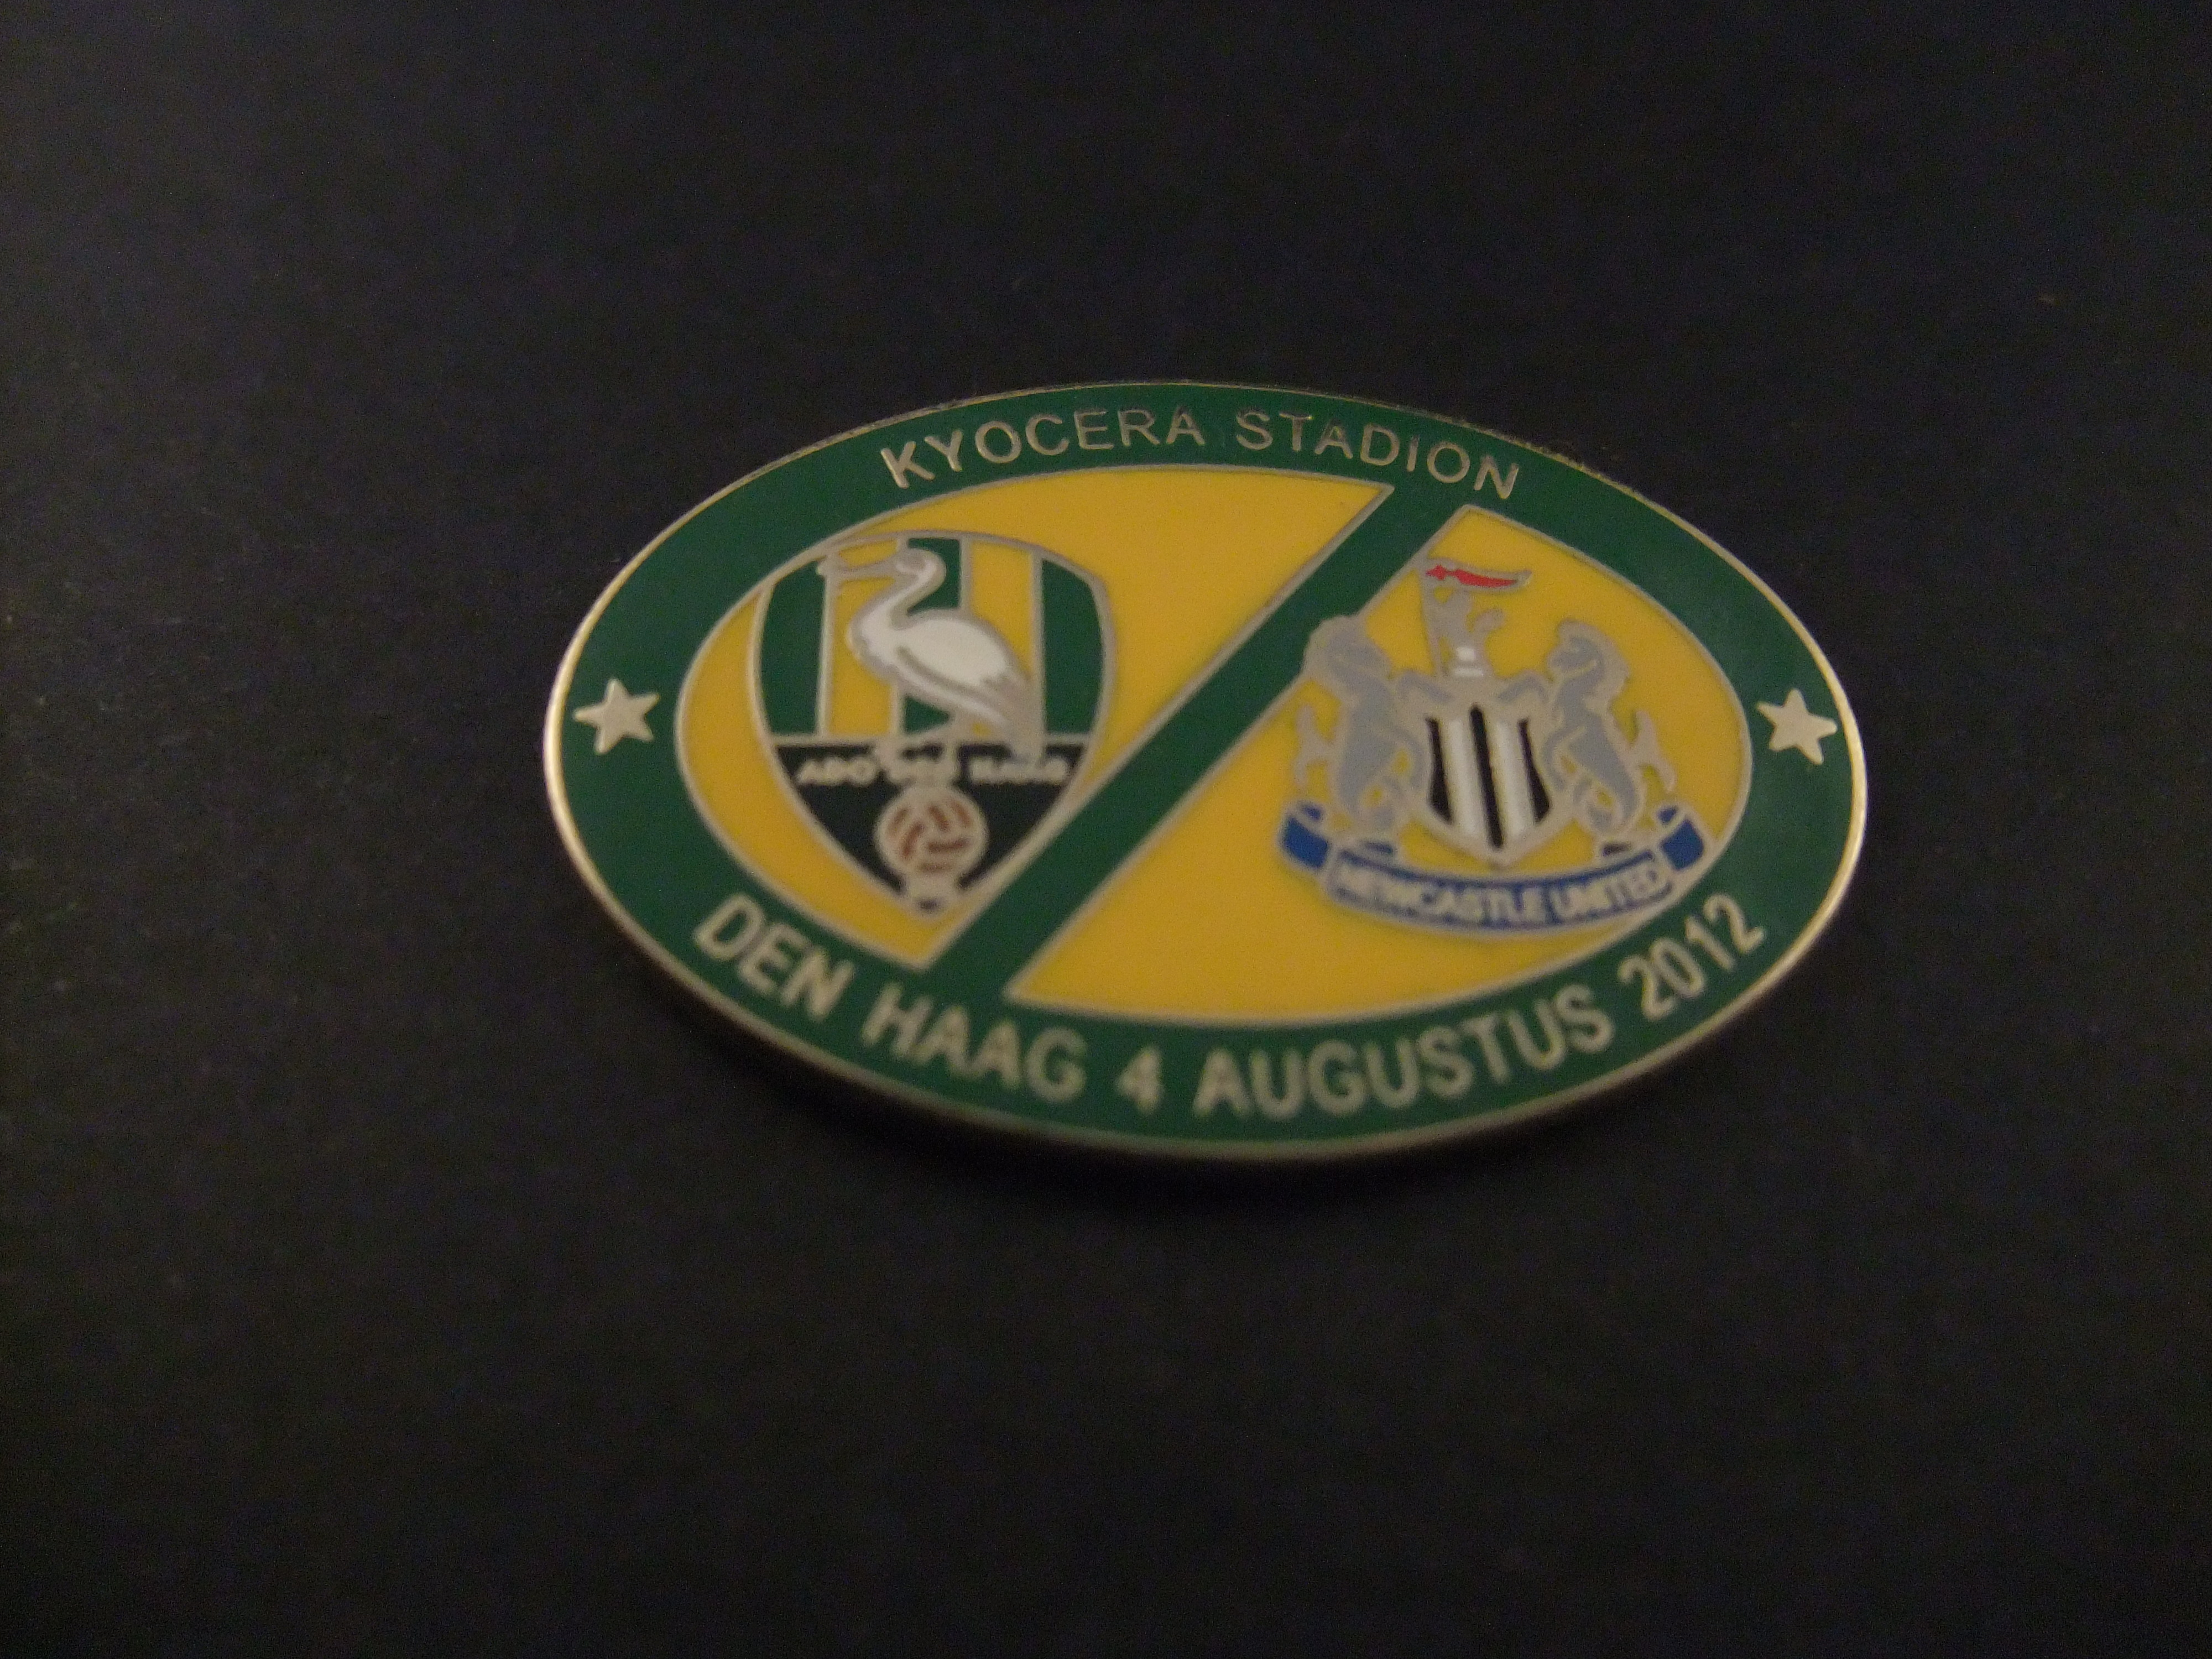 Ado  Den Haag-Newcastle United  Kyocera stadion(nu Cars Jeans Stadion) 4 augustus 2012 groene rand